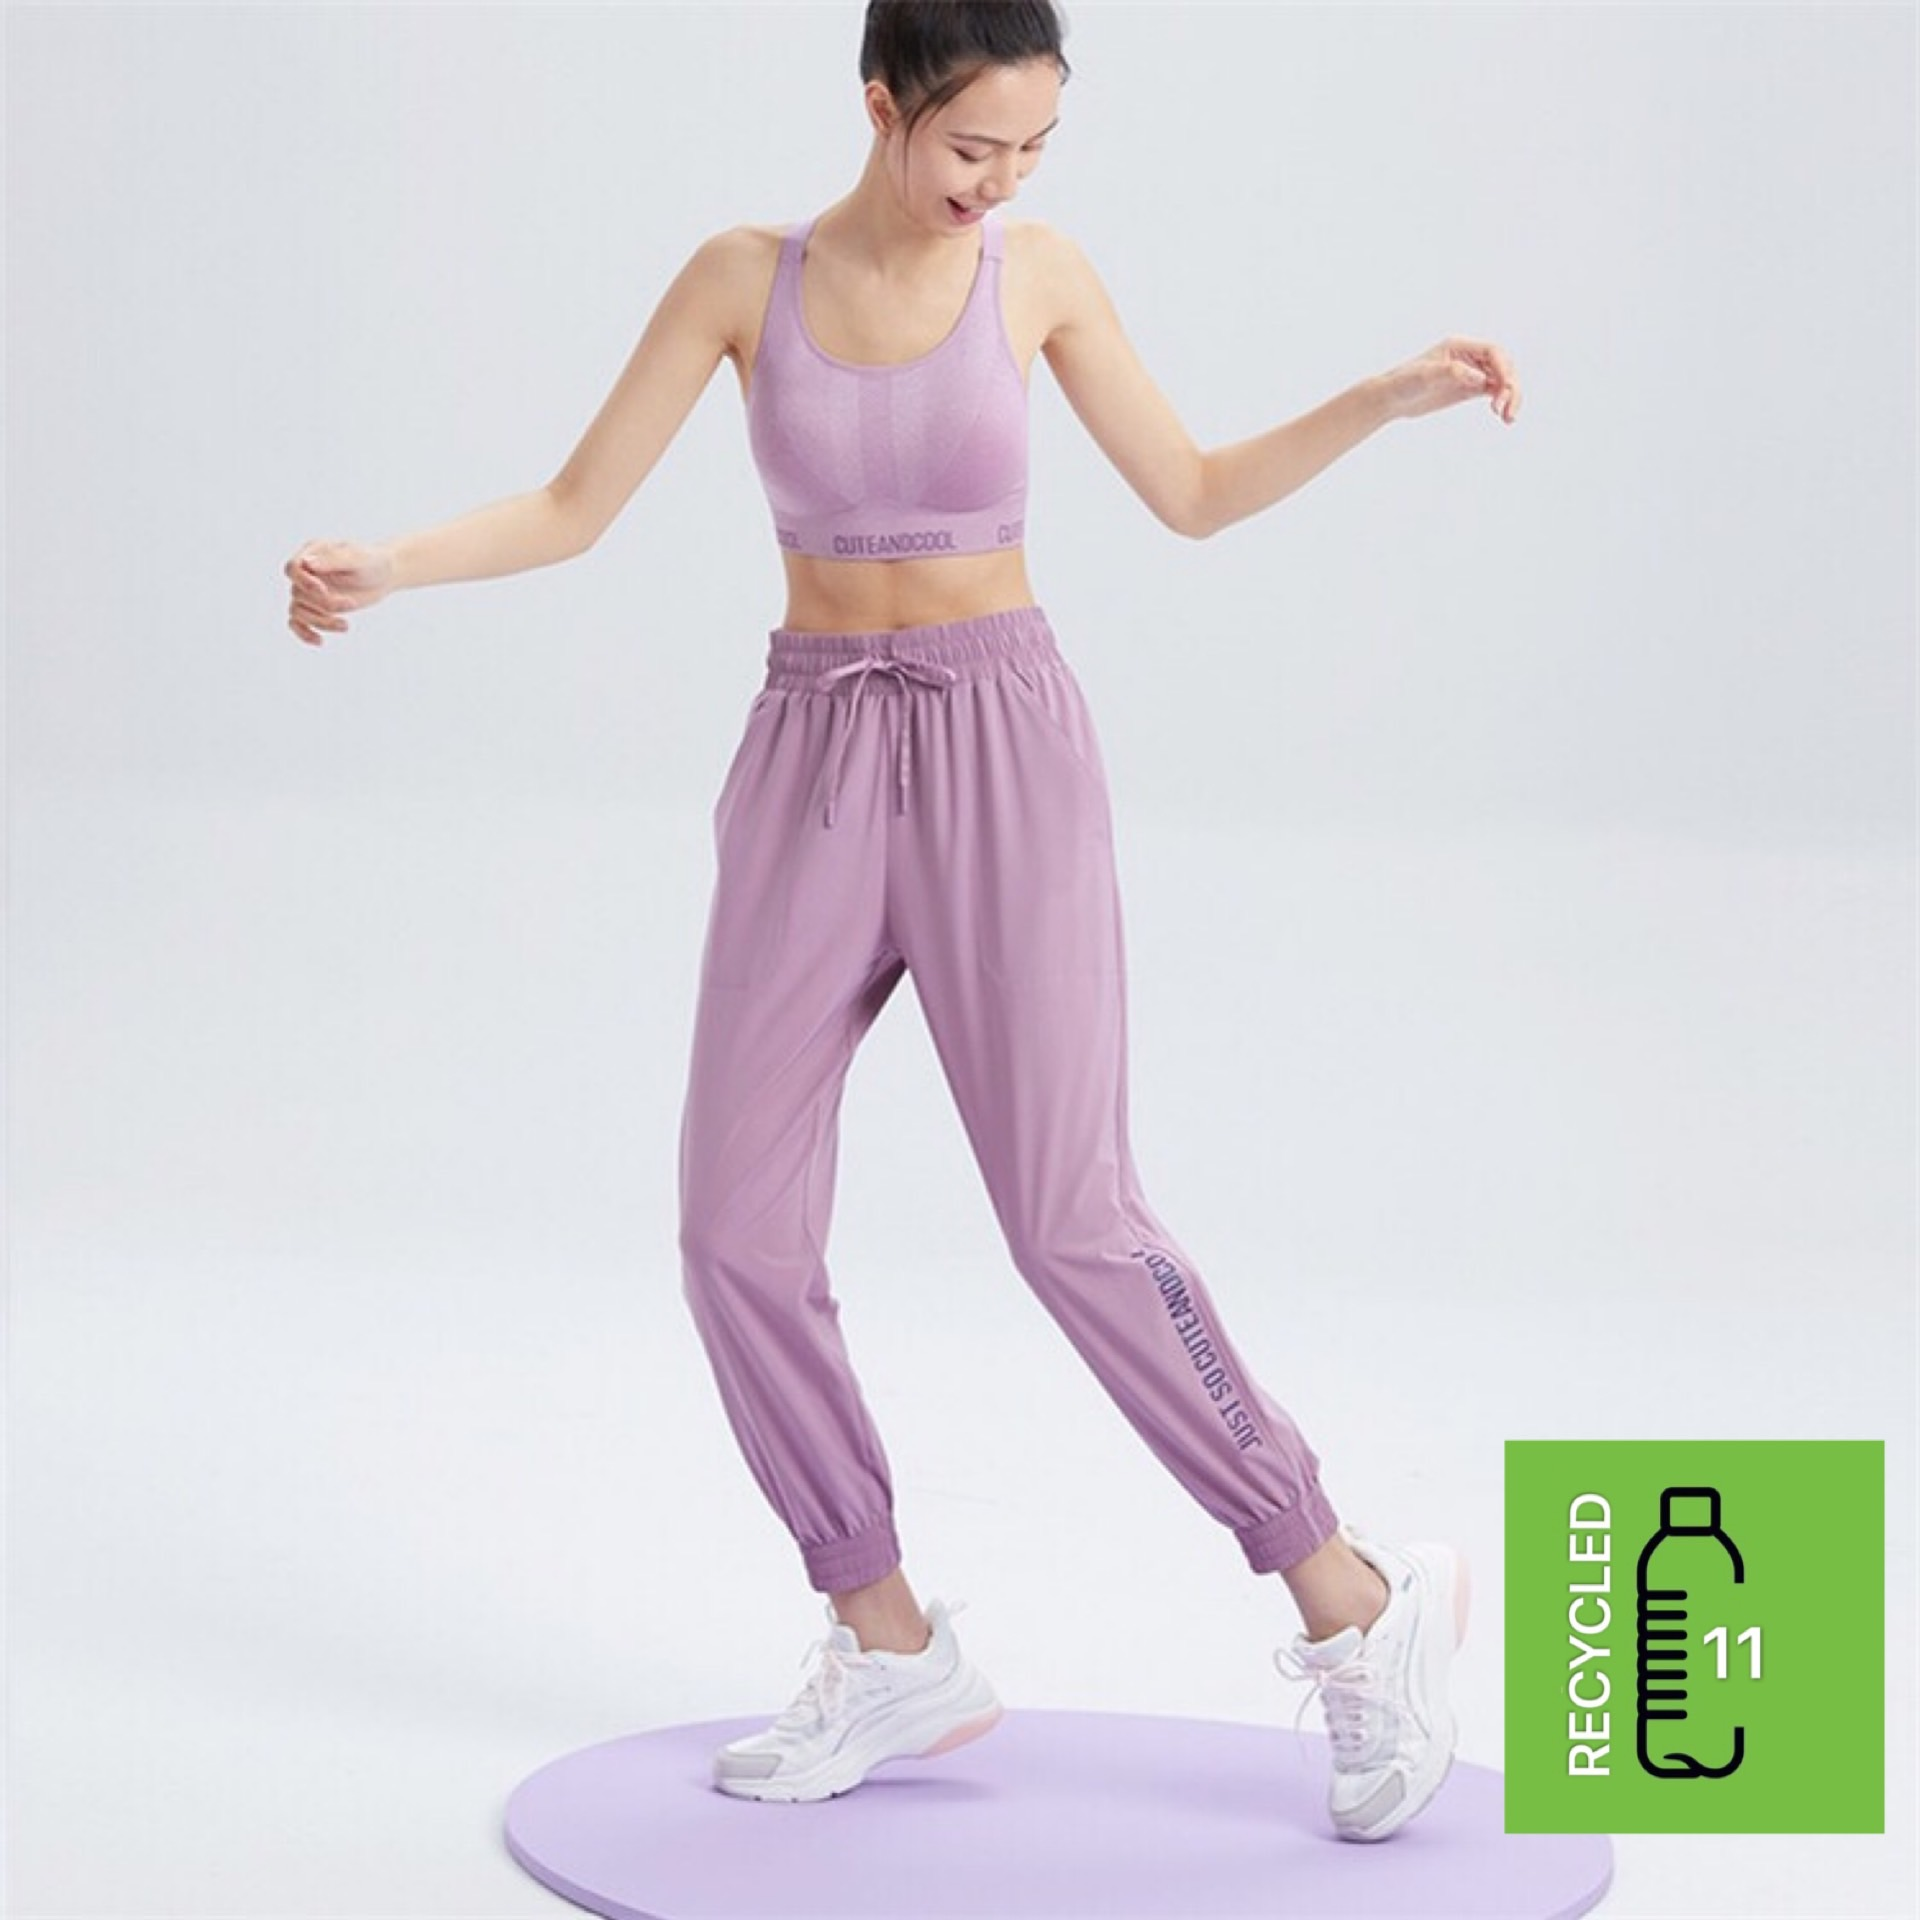 Repreve women Recycled plastic athleisure RPET fitness sports pant gym active tight workout jogger